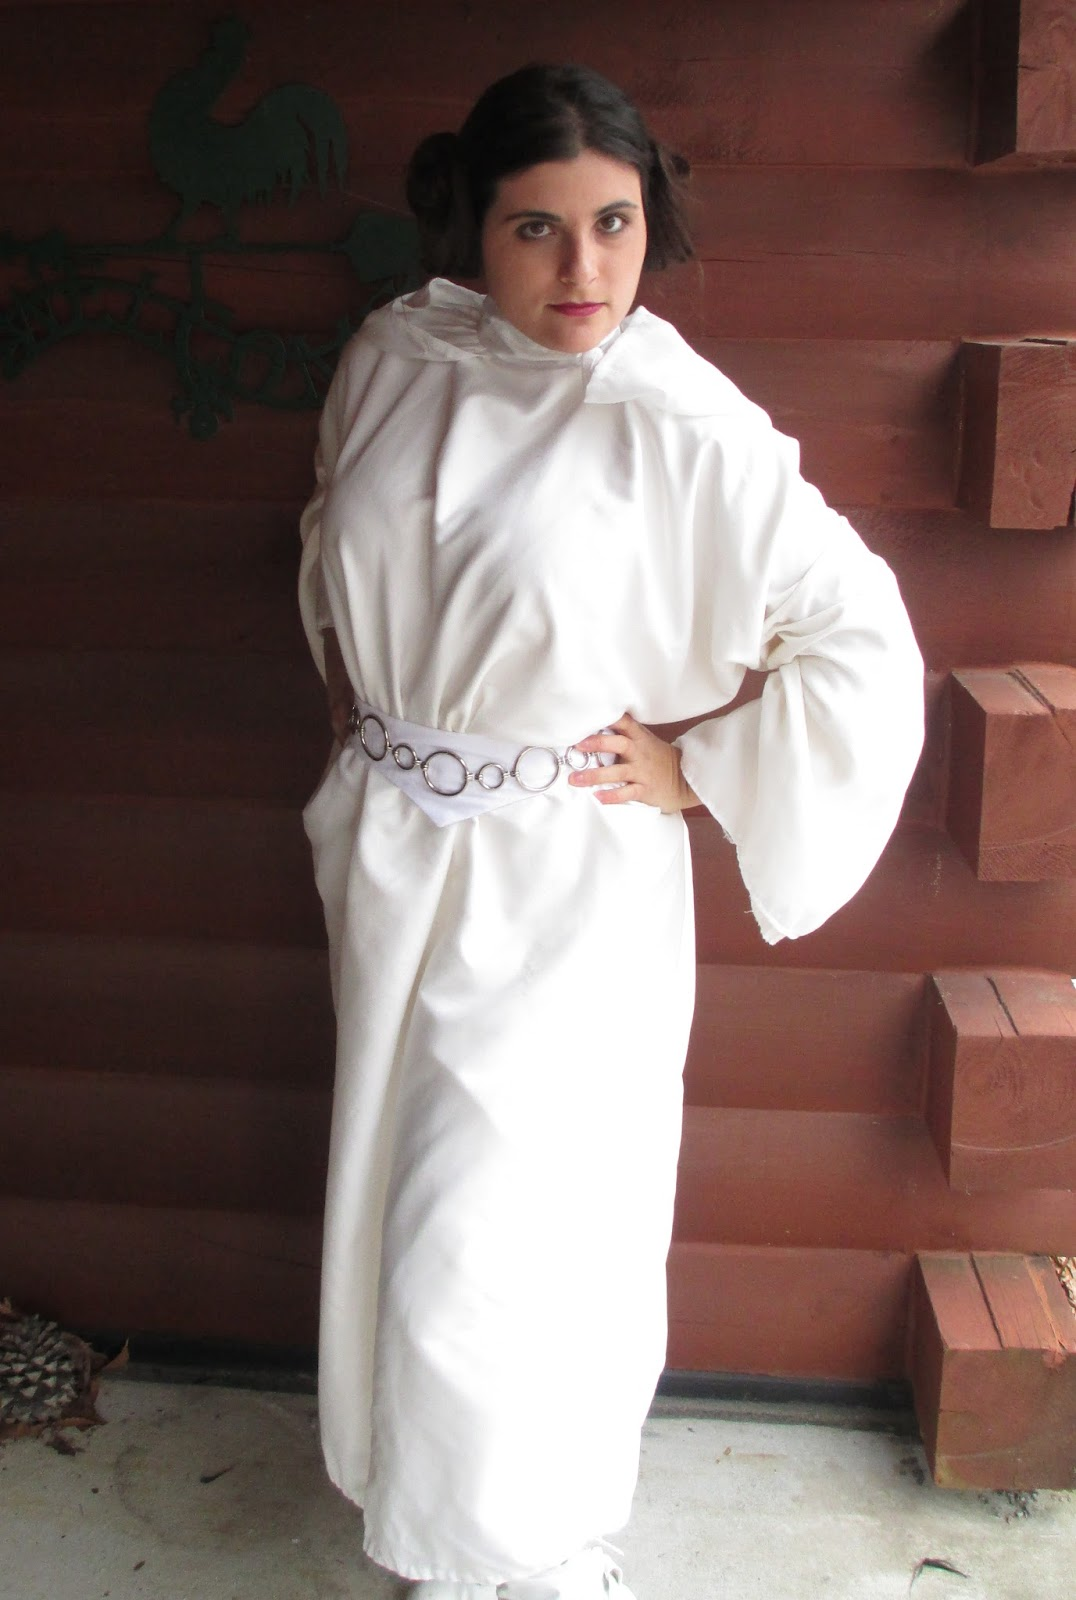 Diy Bedsheet Princess Leia Costume A Tutorial